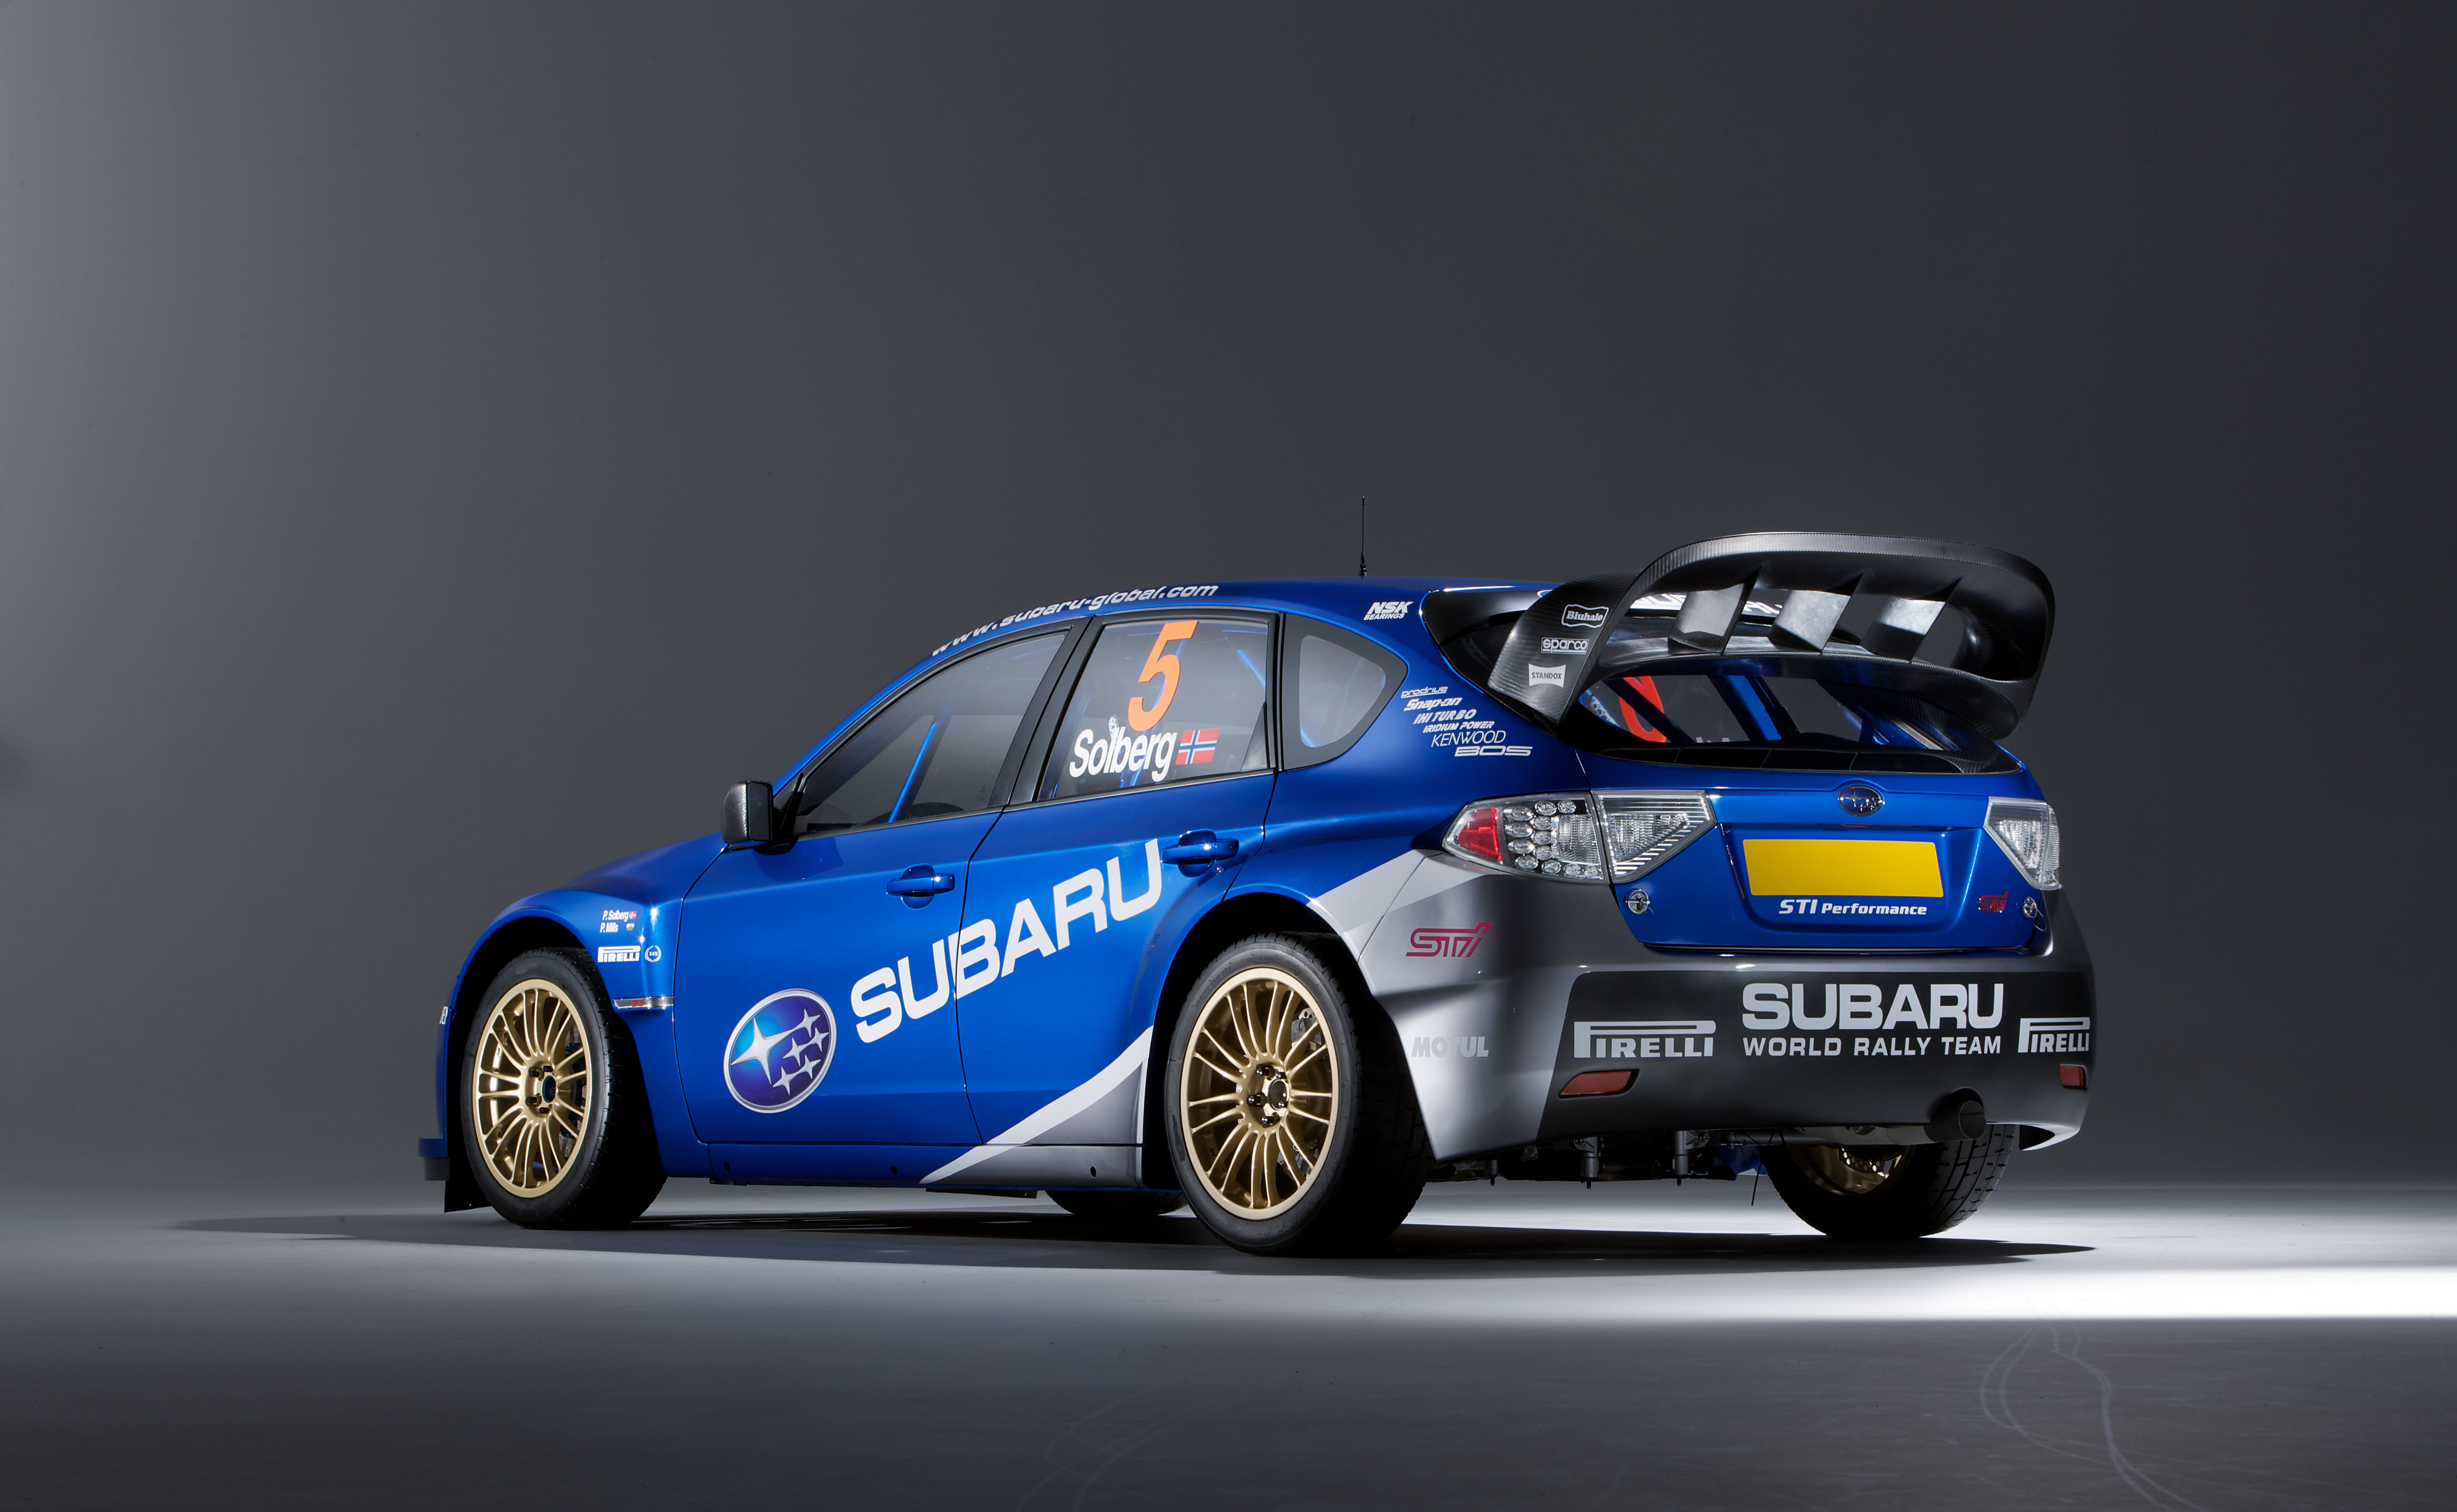 cars rally Subaru Subaru HD Wallpaper